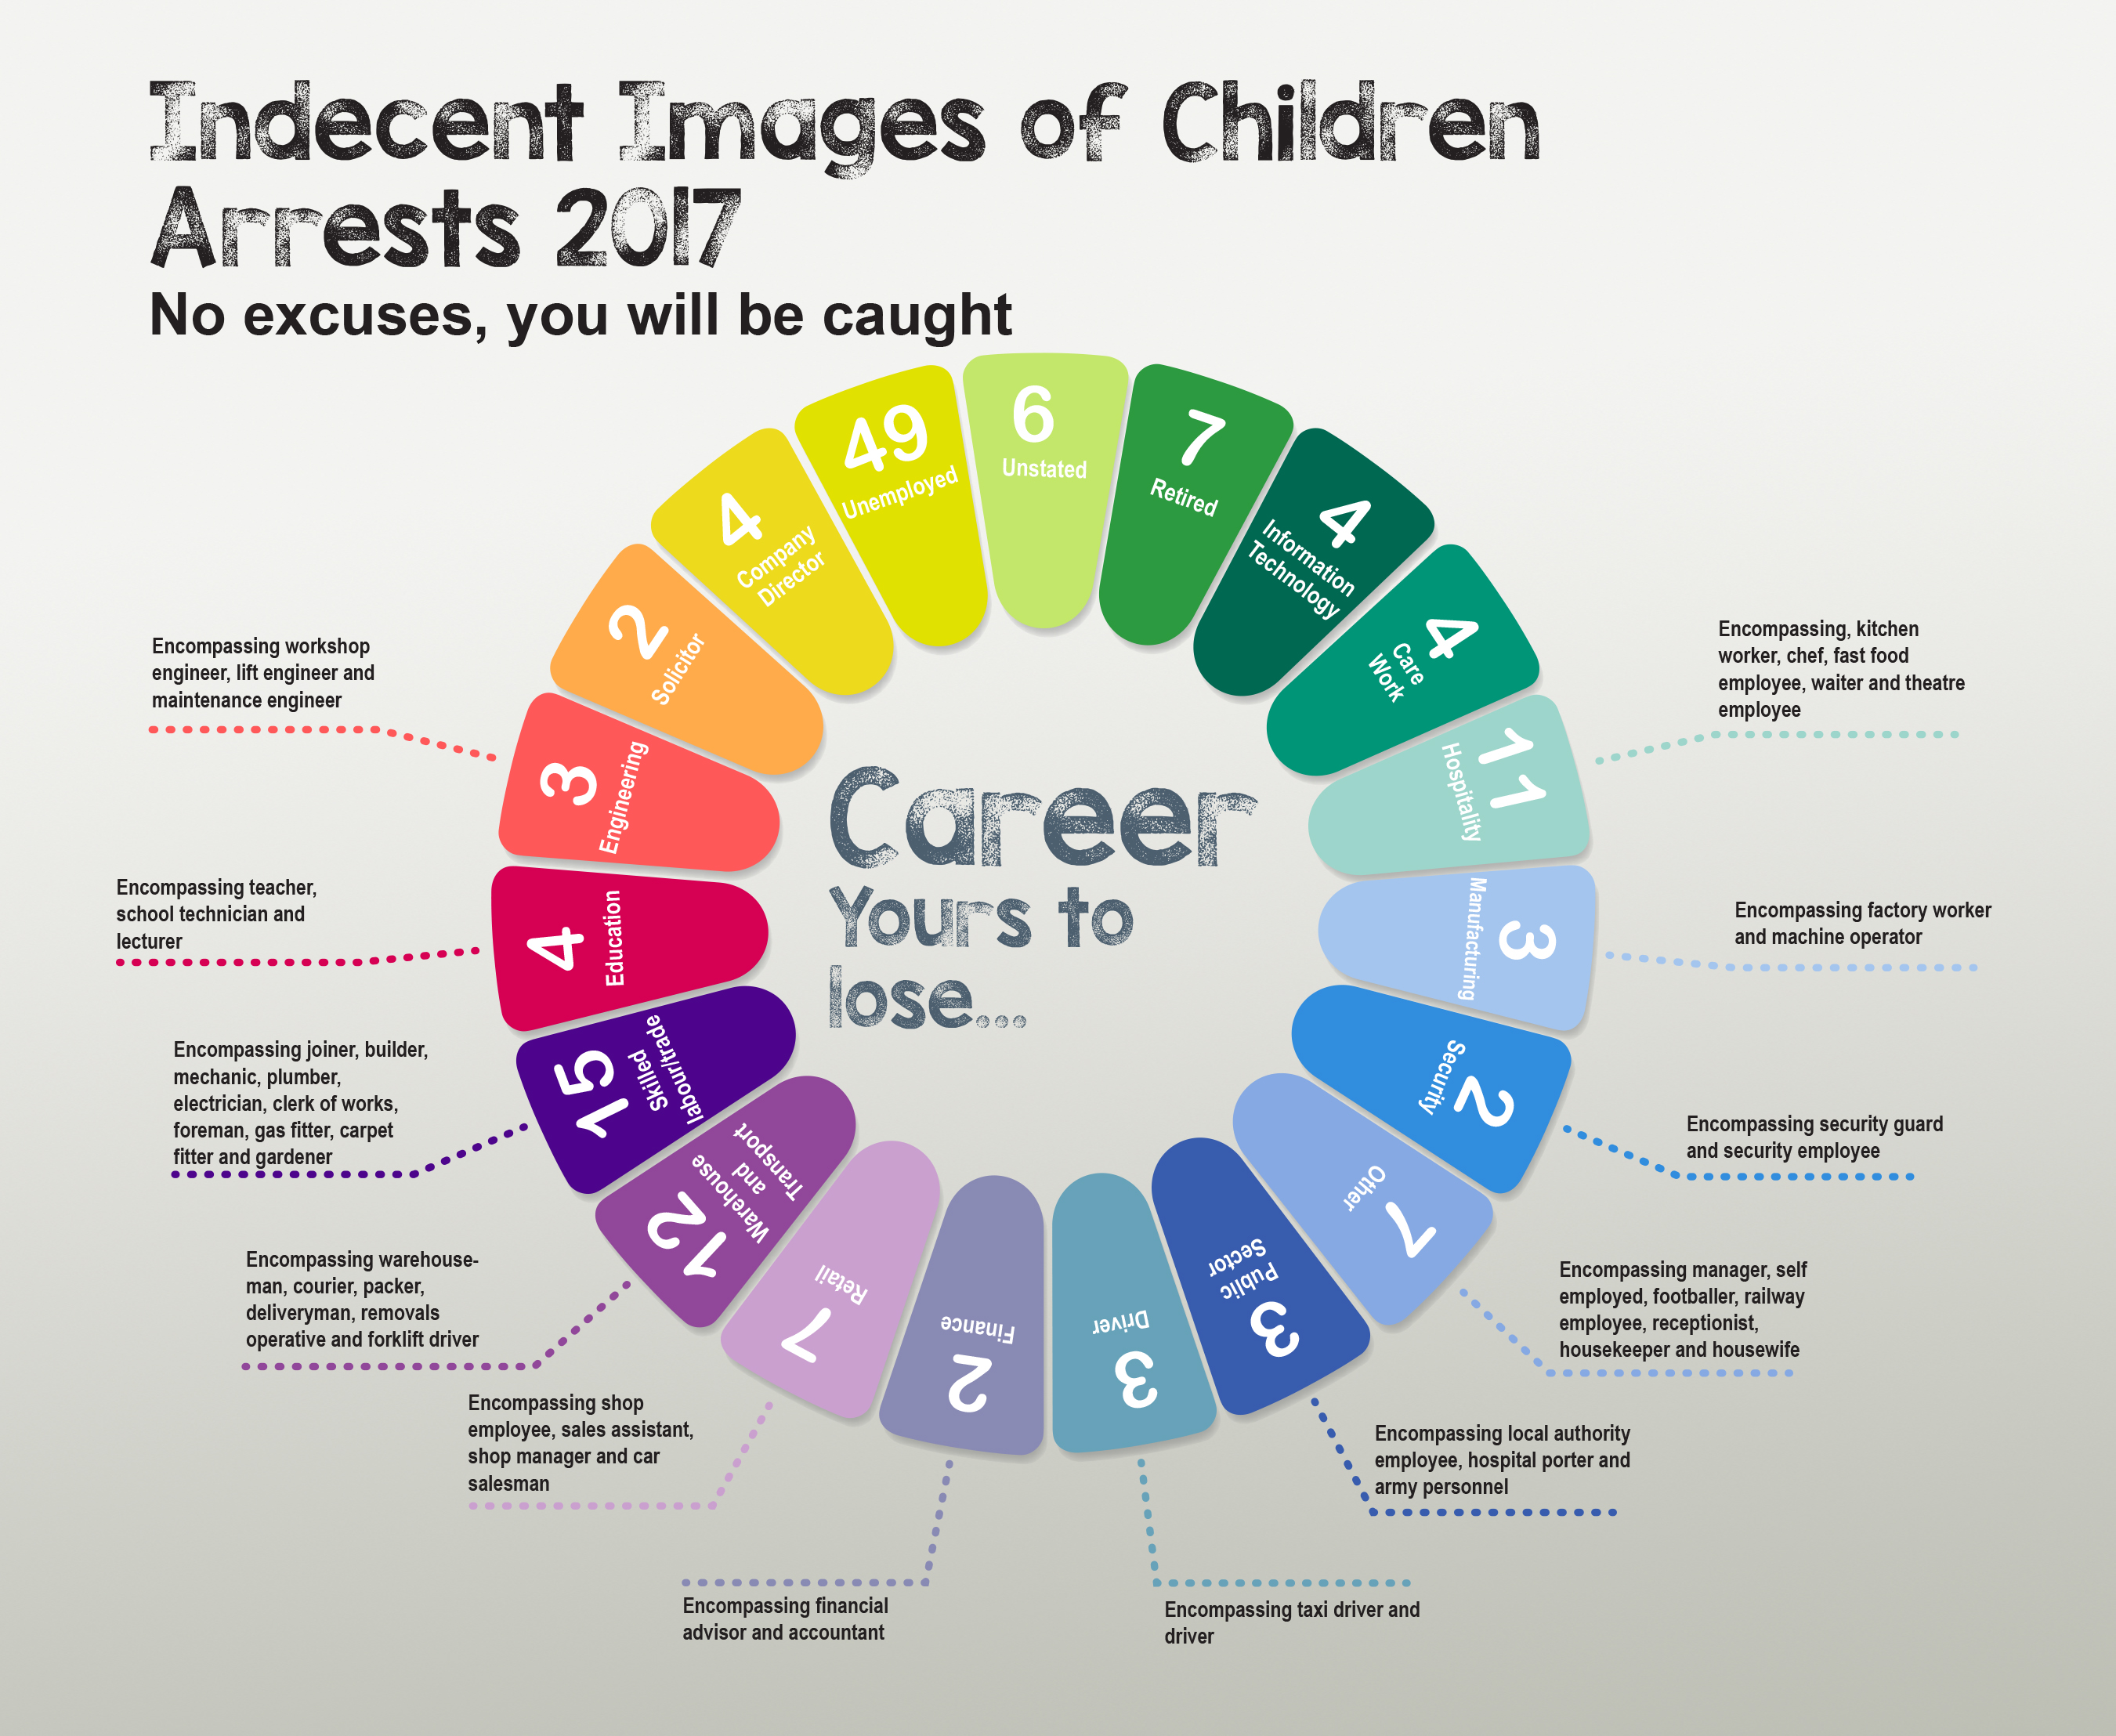 Infographic Showing Professions of Adults Arrested for Looking at Indecent Images of Children